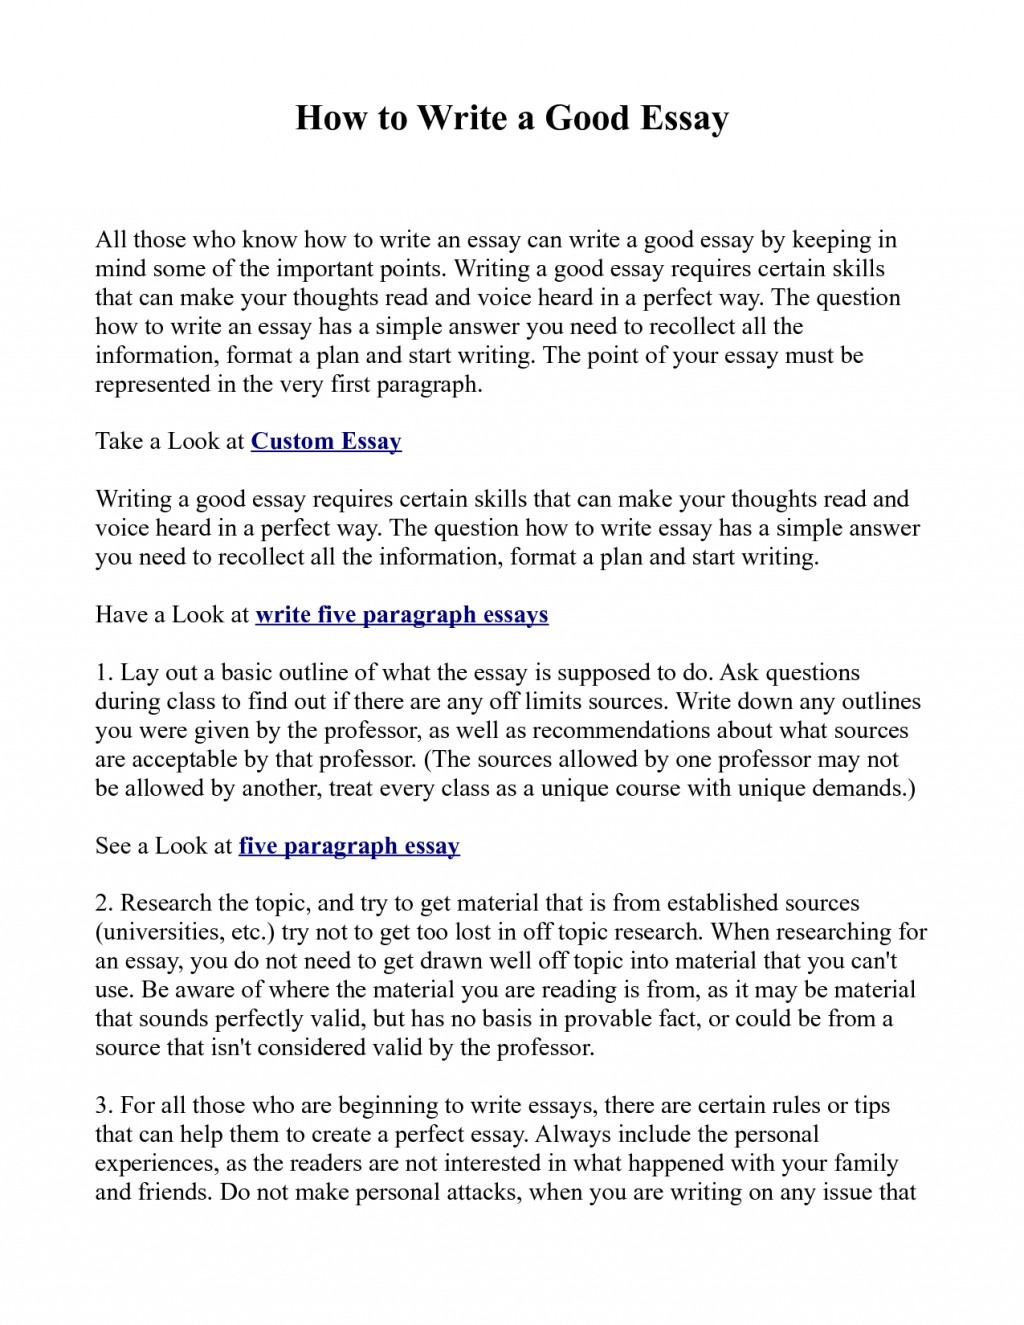 005 Essay Example Ex1id5s6cl How To Amazing Write About Yourself An For A Job Interview Titles In Paper Large